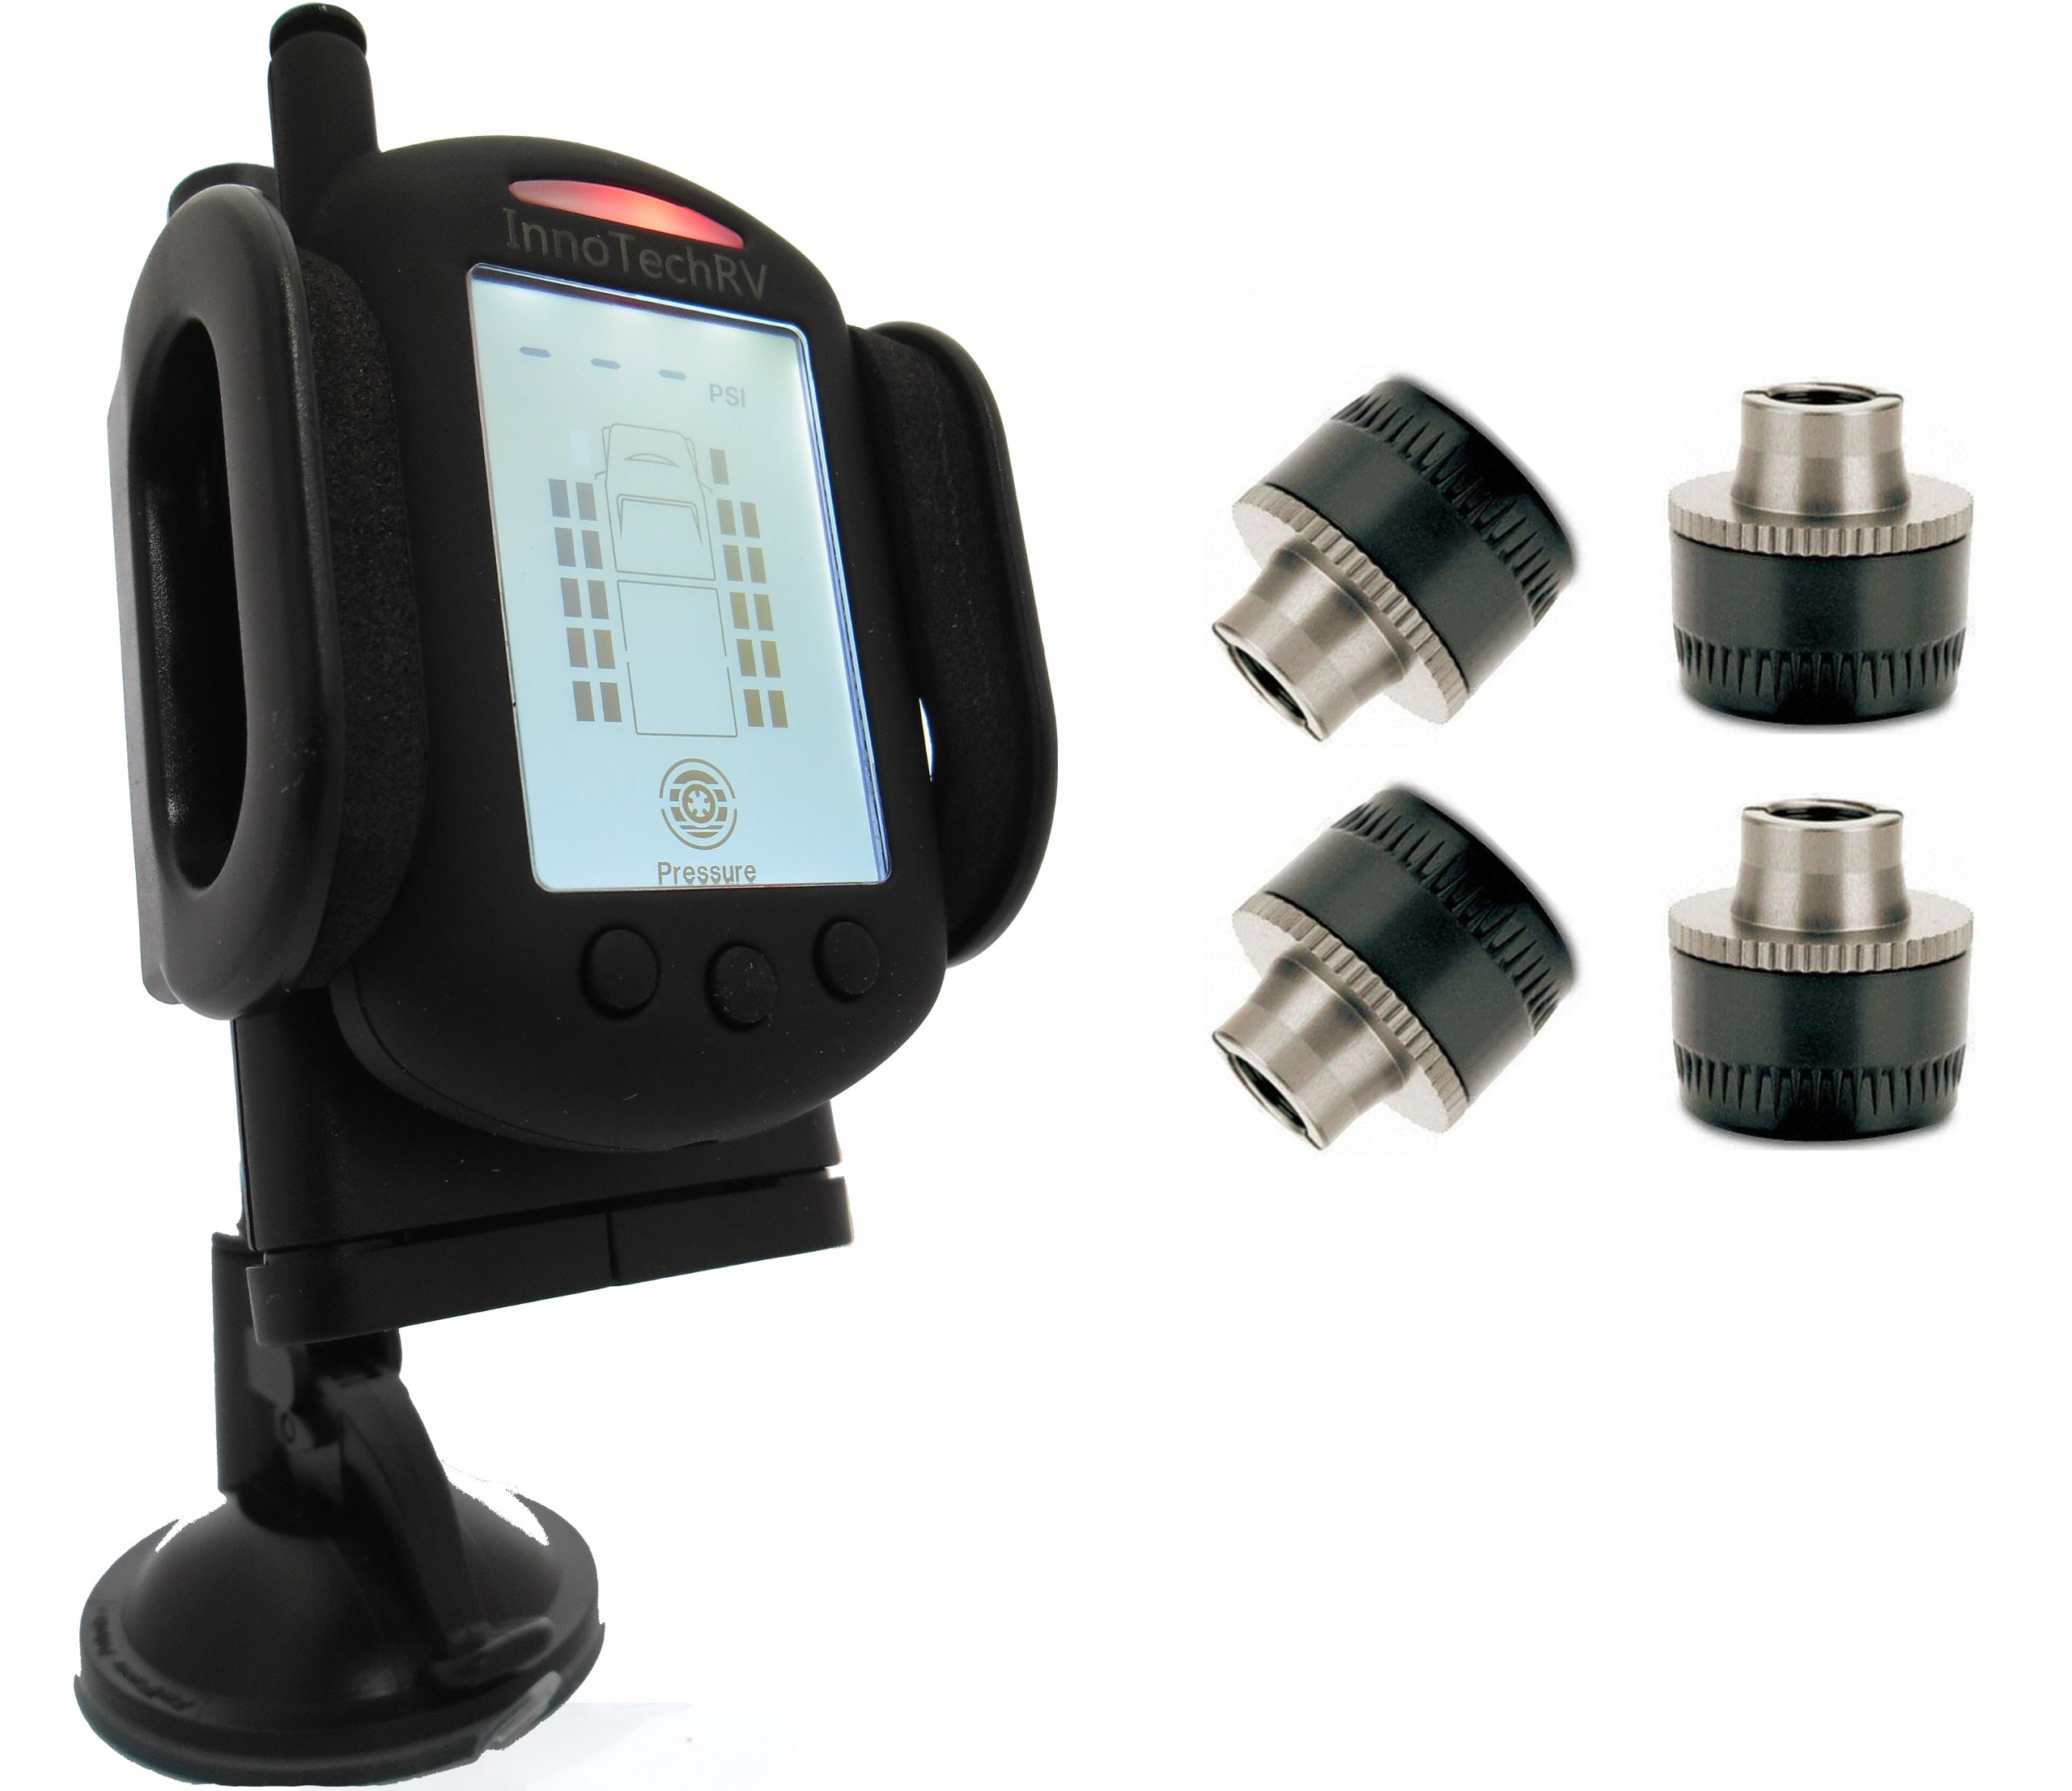 Tire Pressure Monitoring System for RVs and Trucks with 4 Sensors